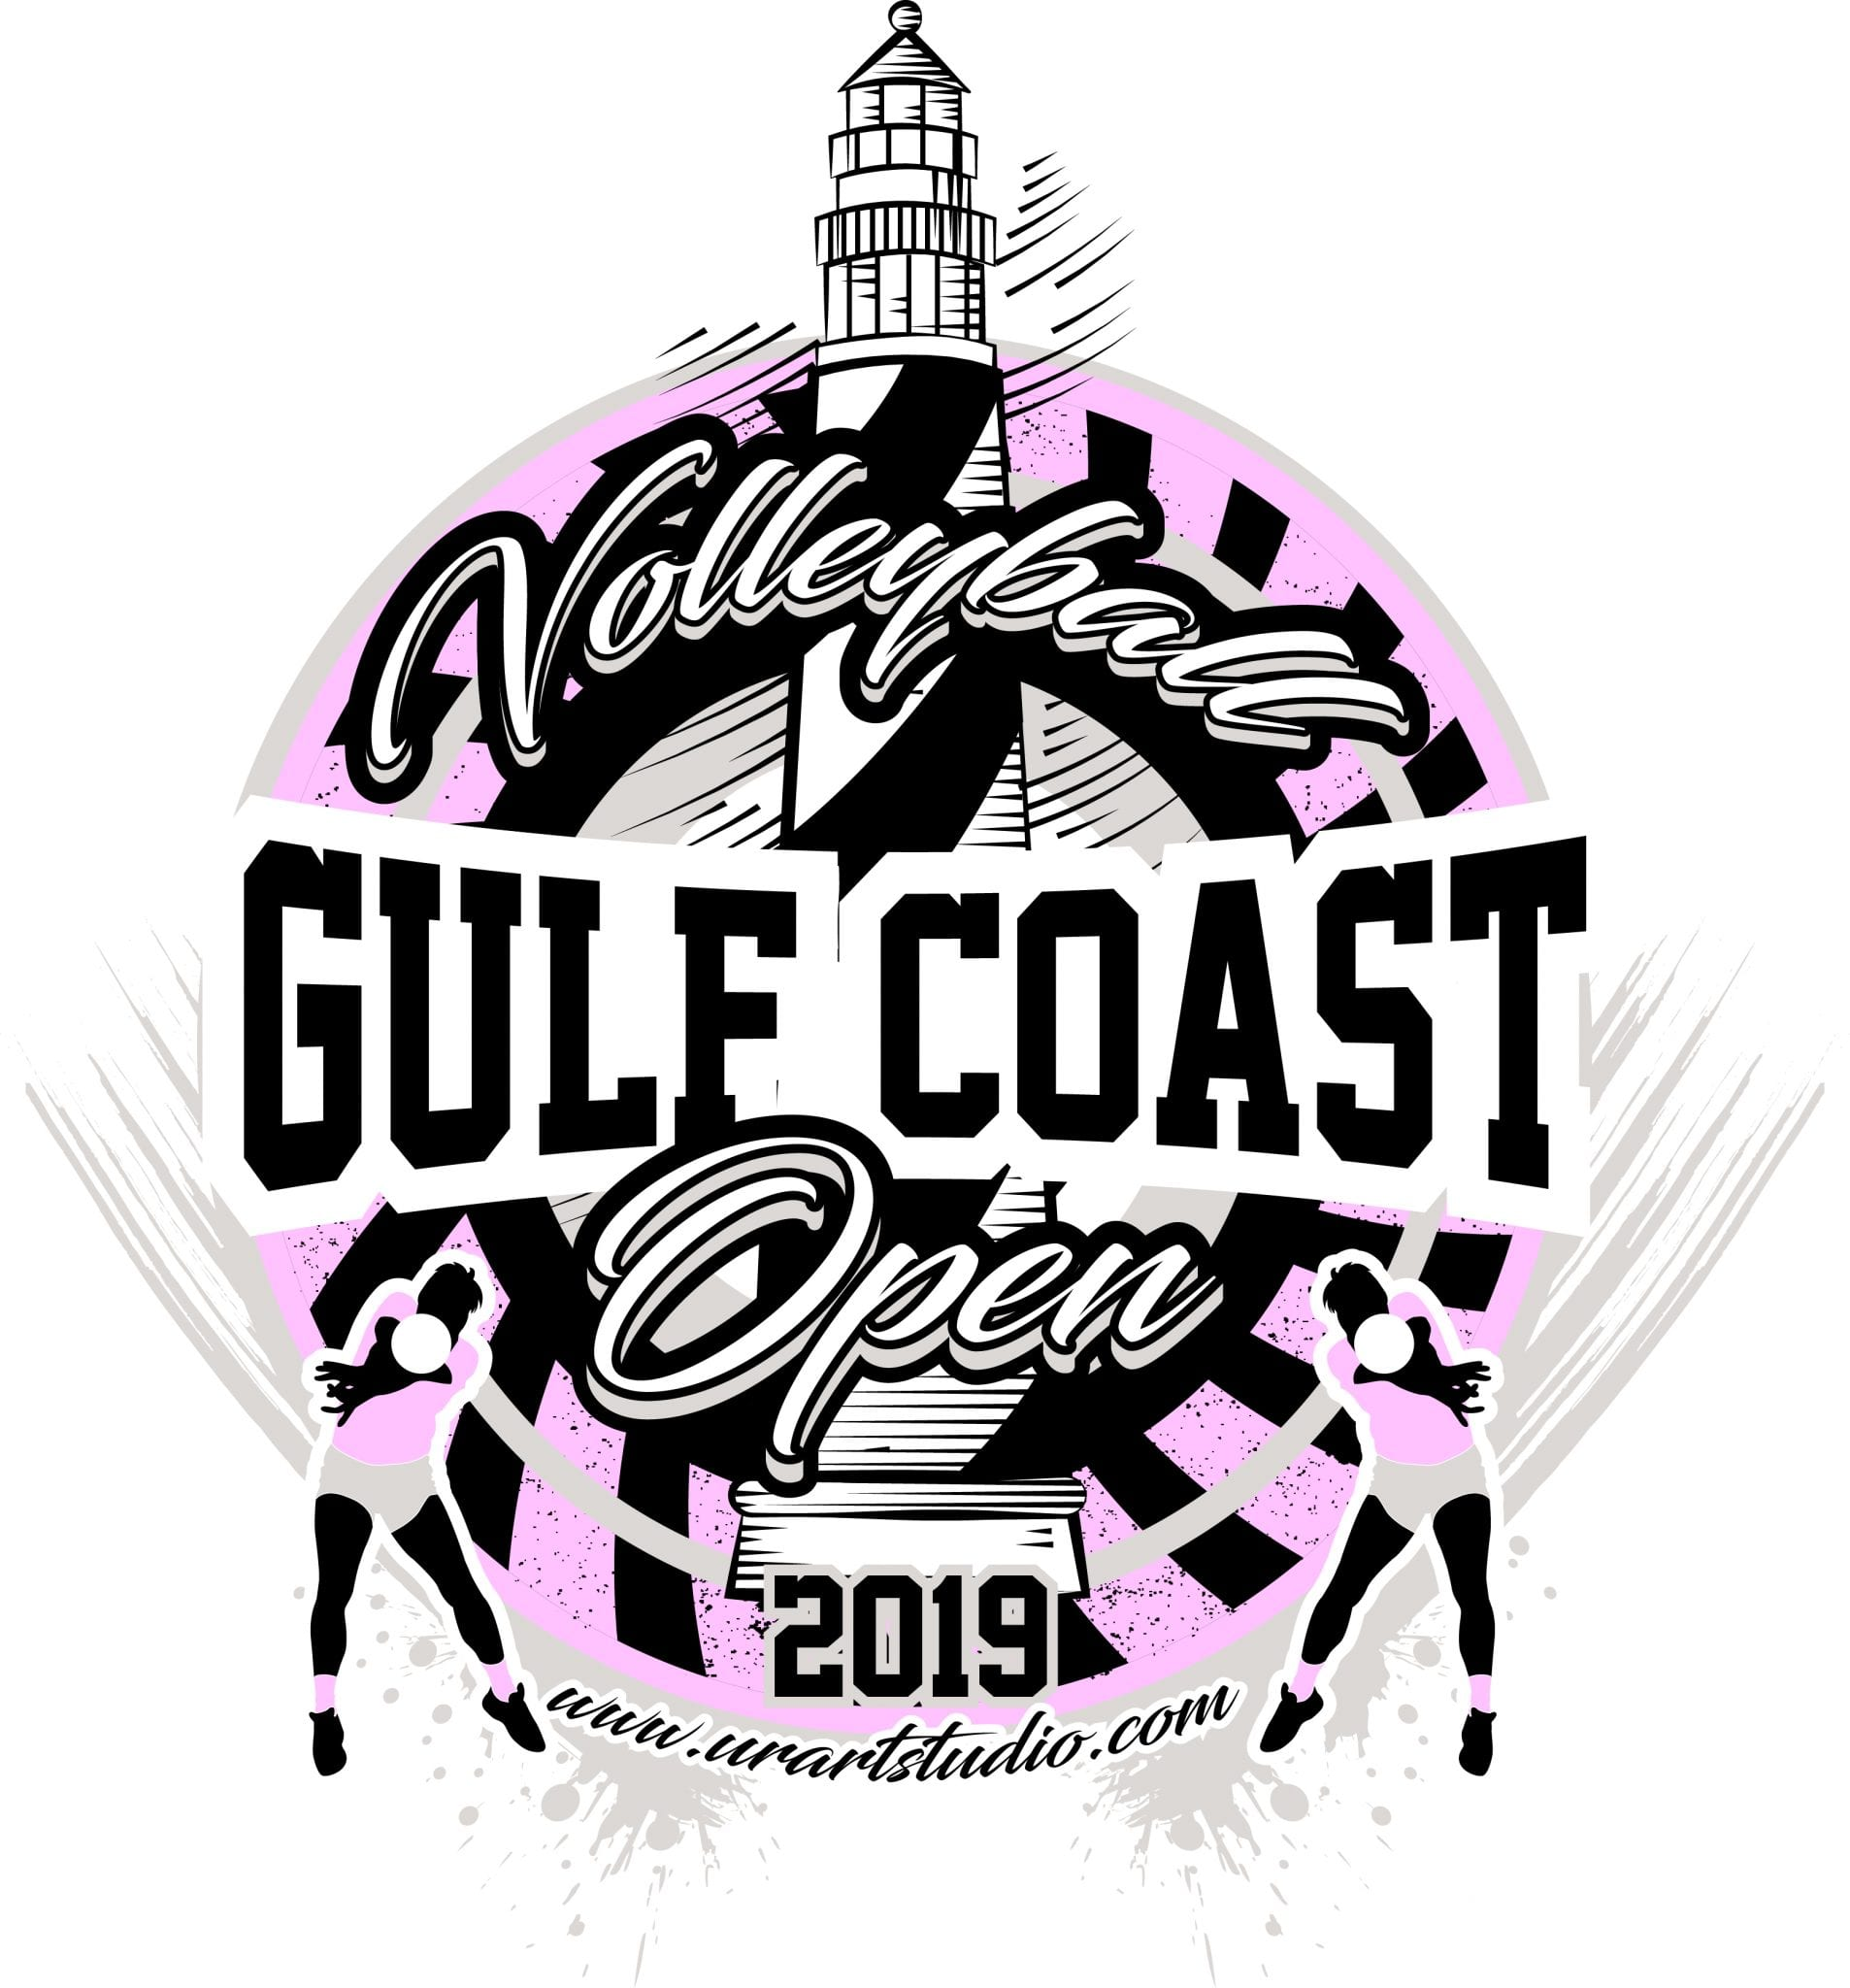 VOLLEYBALL GULF COAST OPEN 2019 T-shirt vector logo design for print